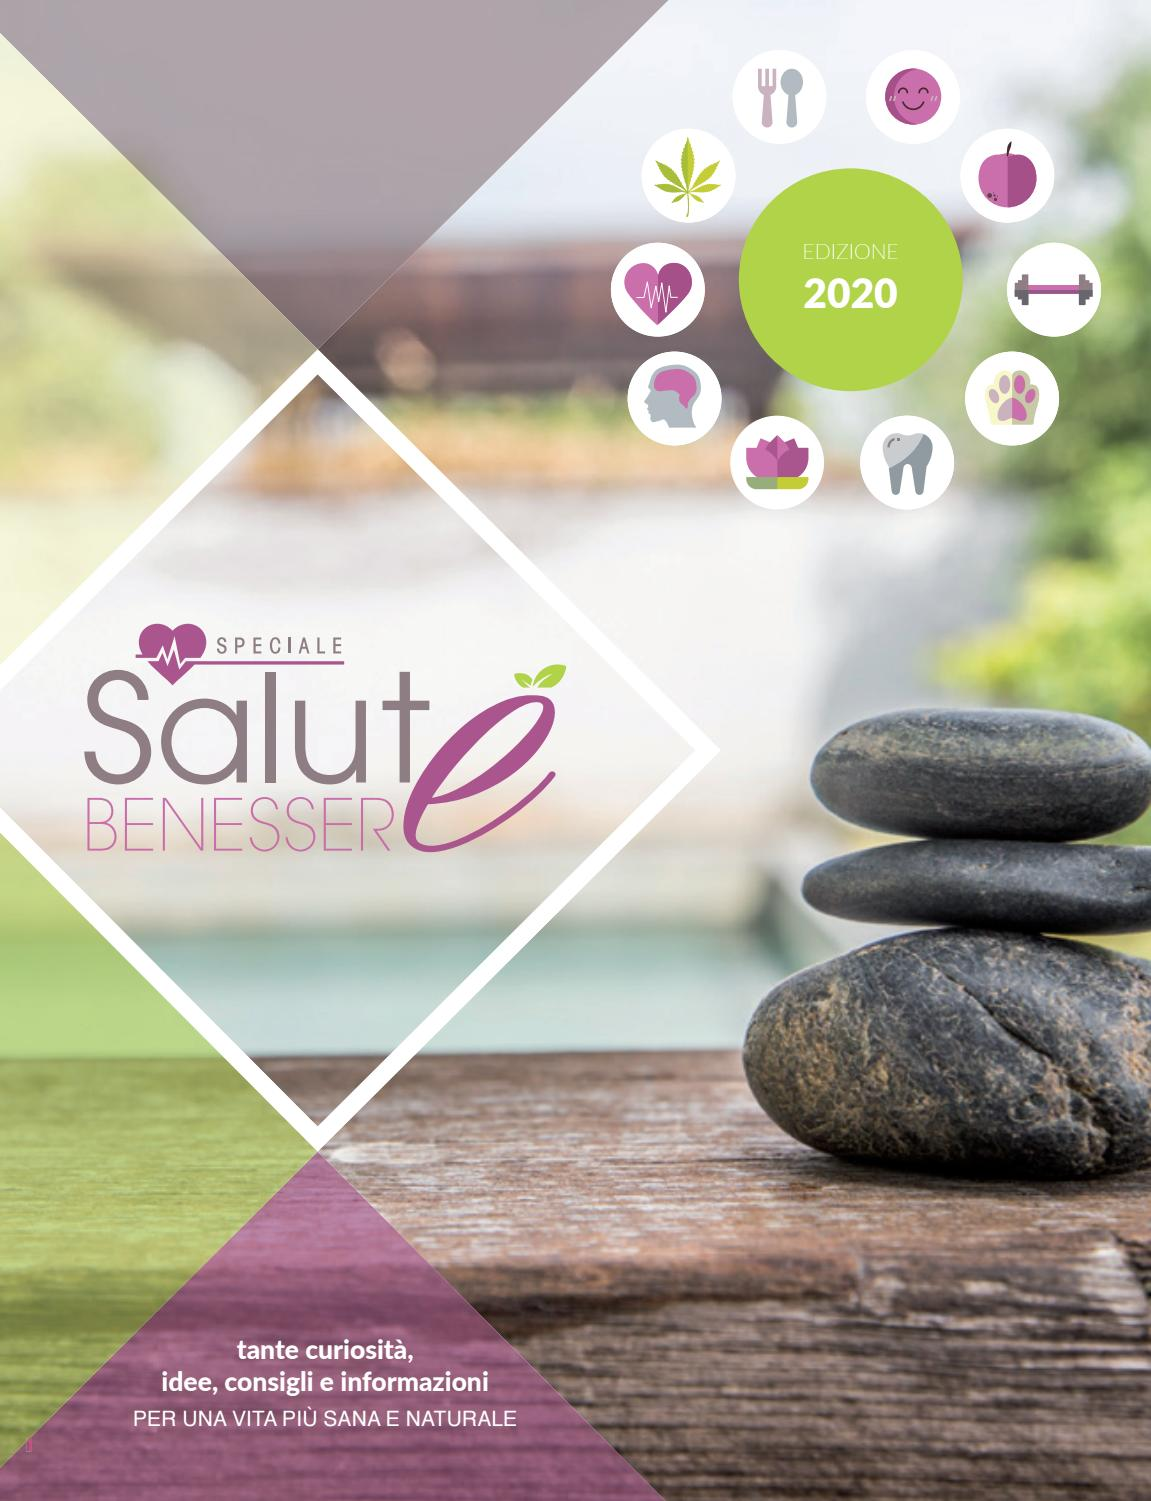 Speciale Salute Benessere 2020 By La Piazza Srl Issuu